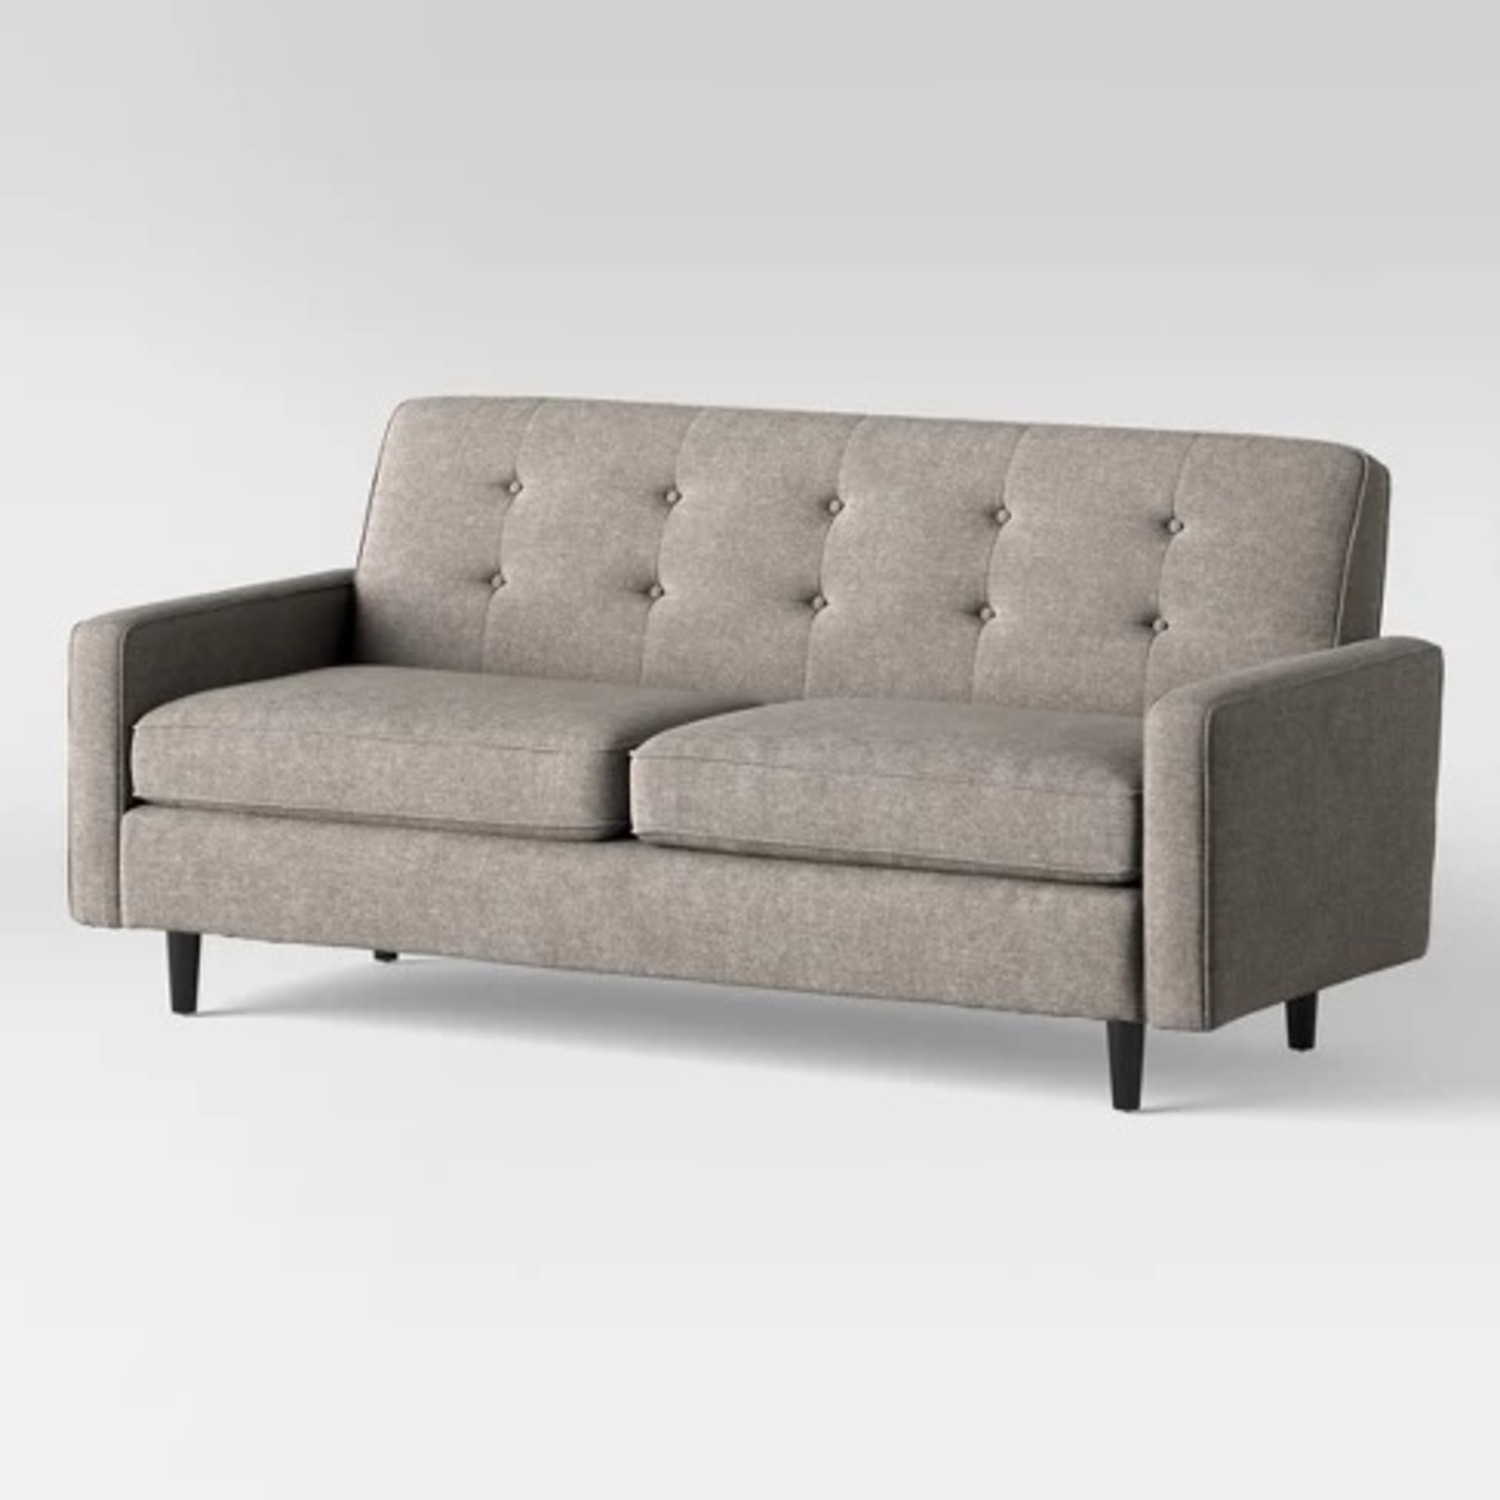 Target Largent Tufted Gray Couch - image-2